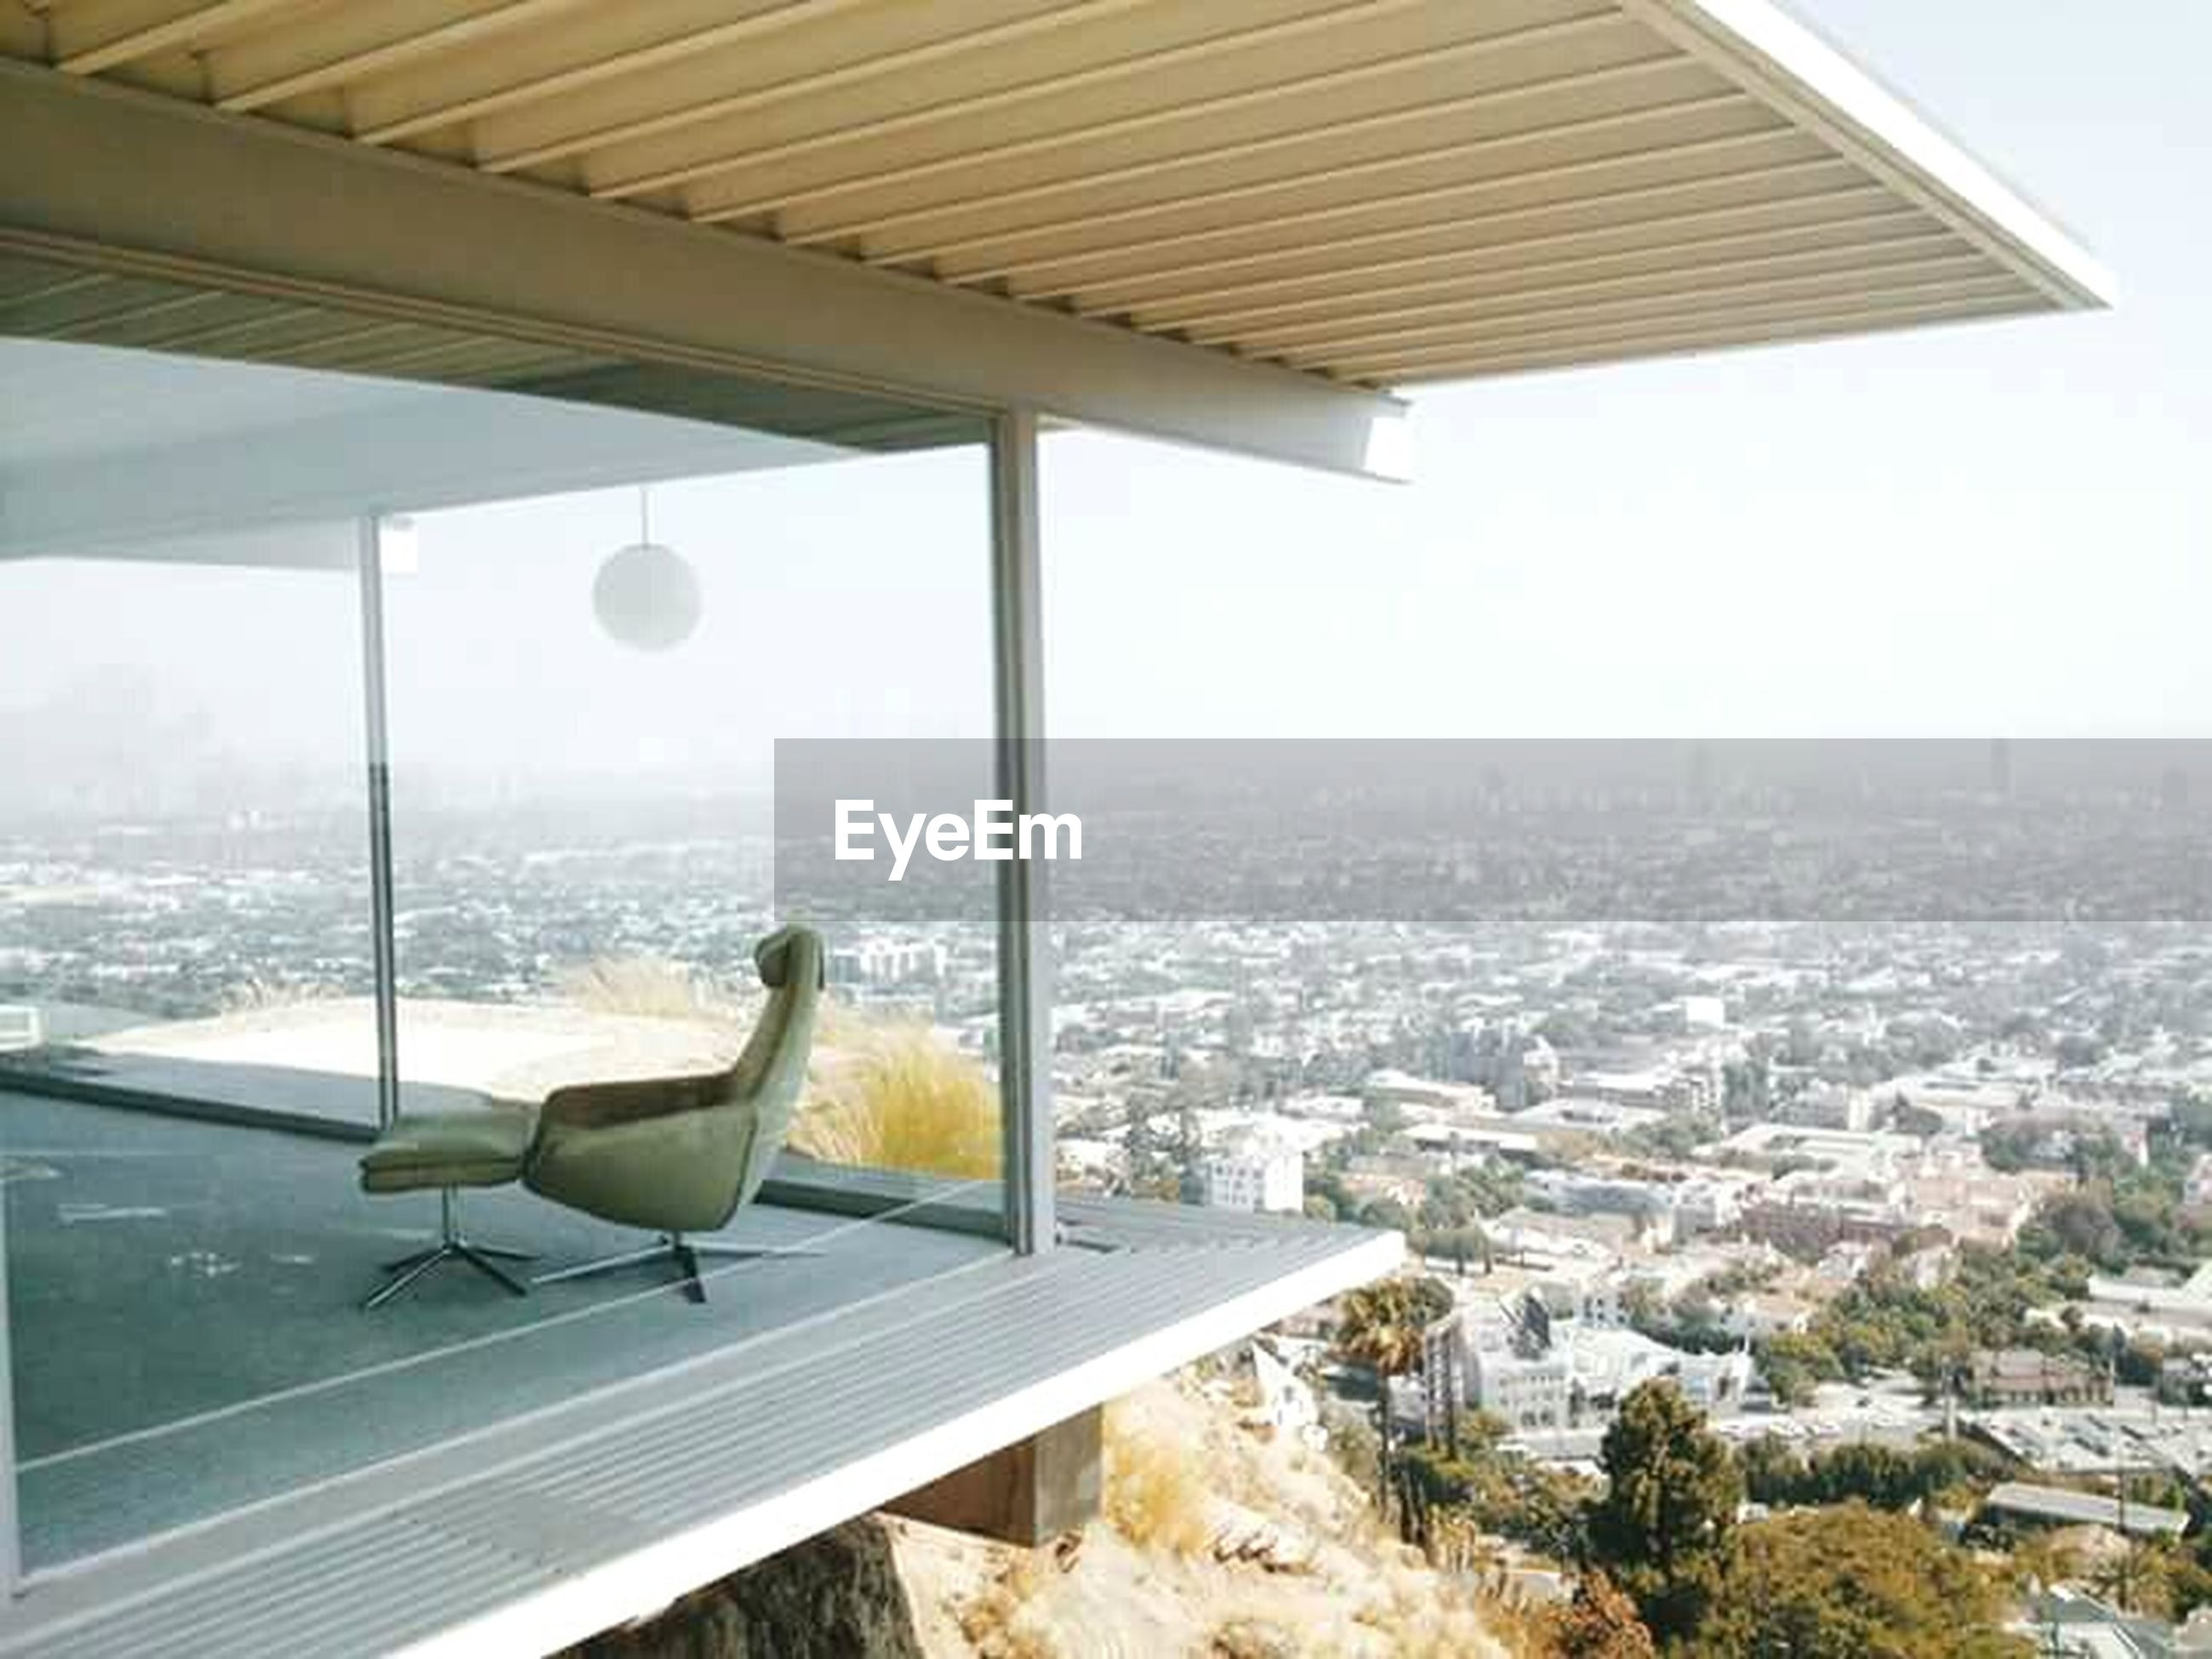 cityscape, architecture, built structure, city, building exterior, window, indoors, sky, glass - material, one person, transparent, flying, day, clear sky, looking through window, sunlight, modern, sea, high angle view, skyscraper